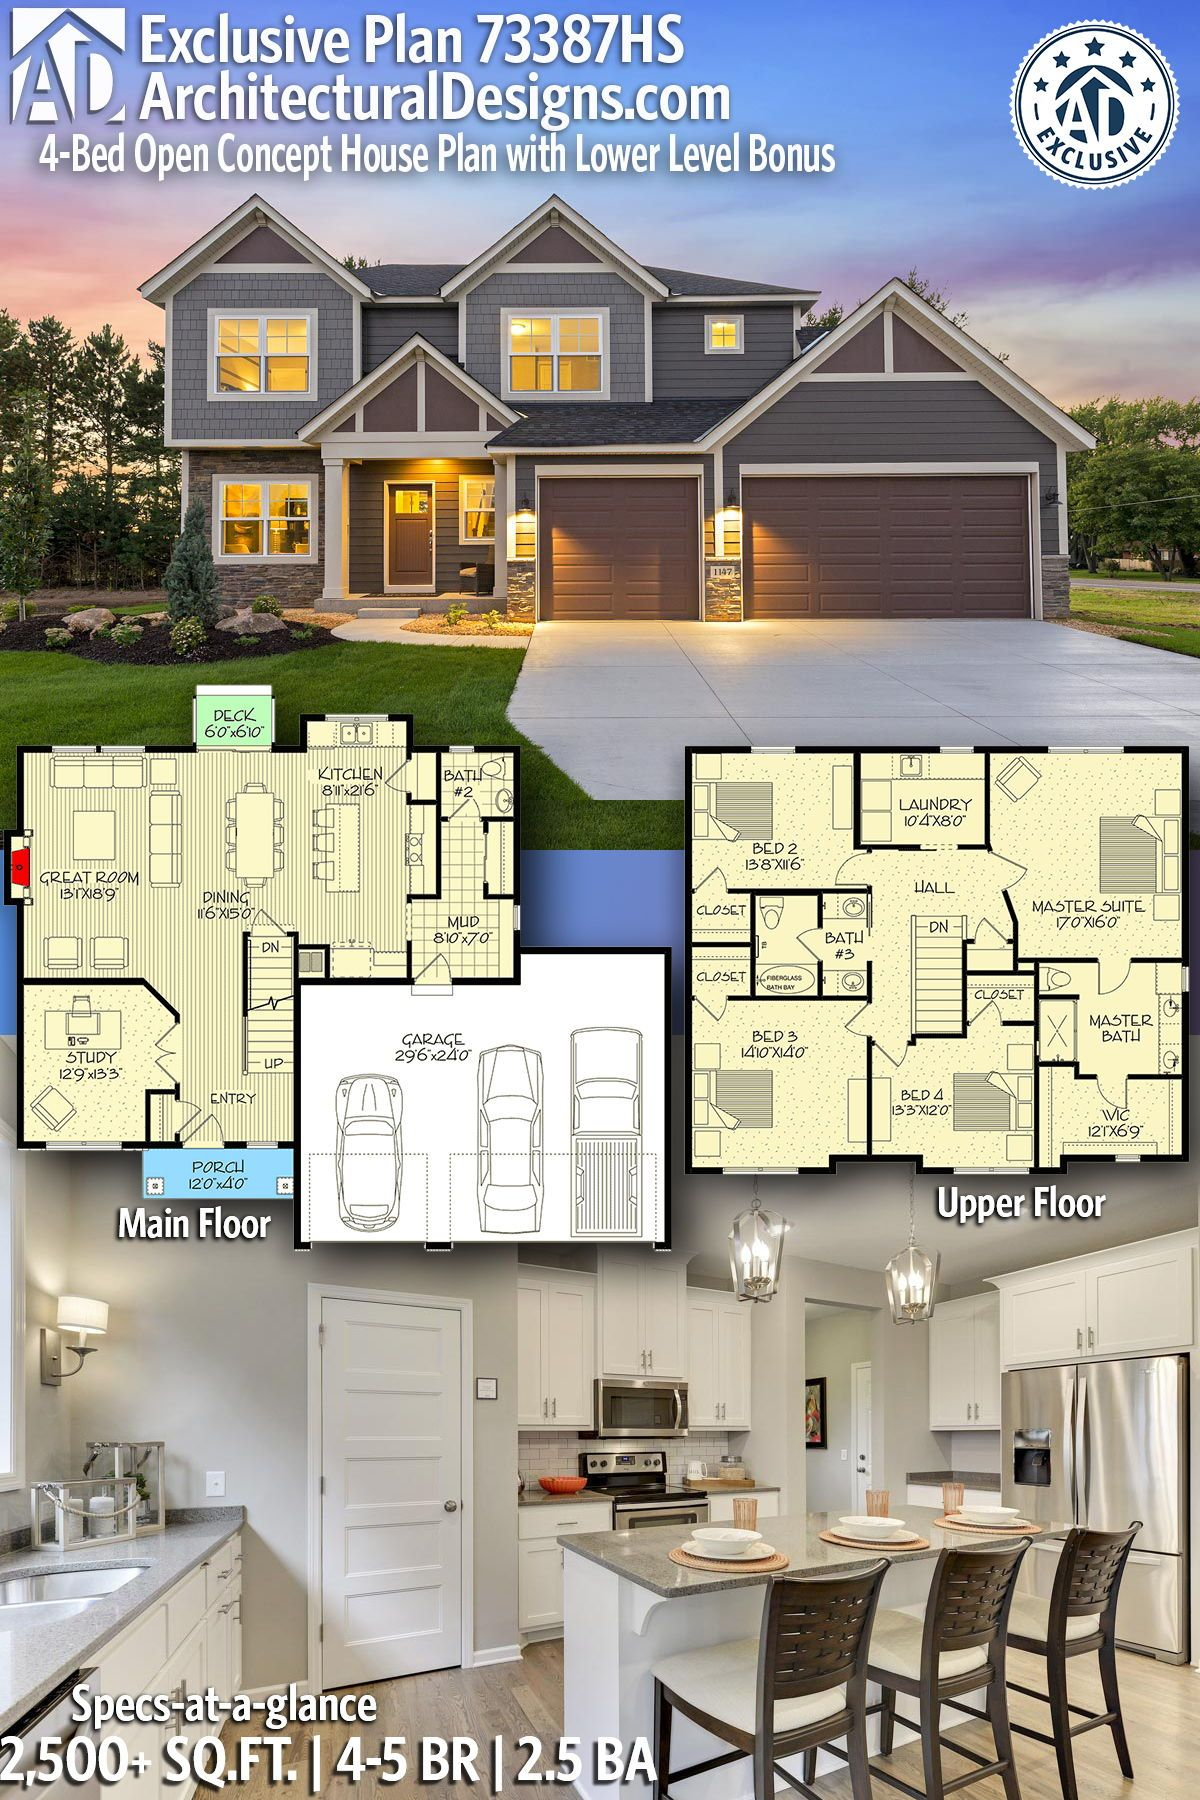 Plan 73387hs Exclusive 4 Bed Open Concept House Plan With